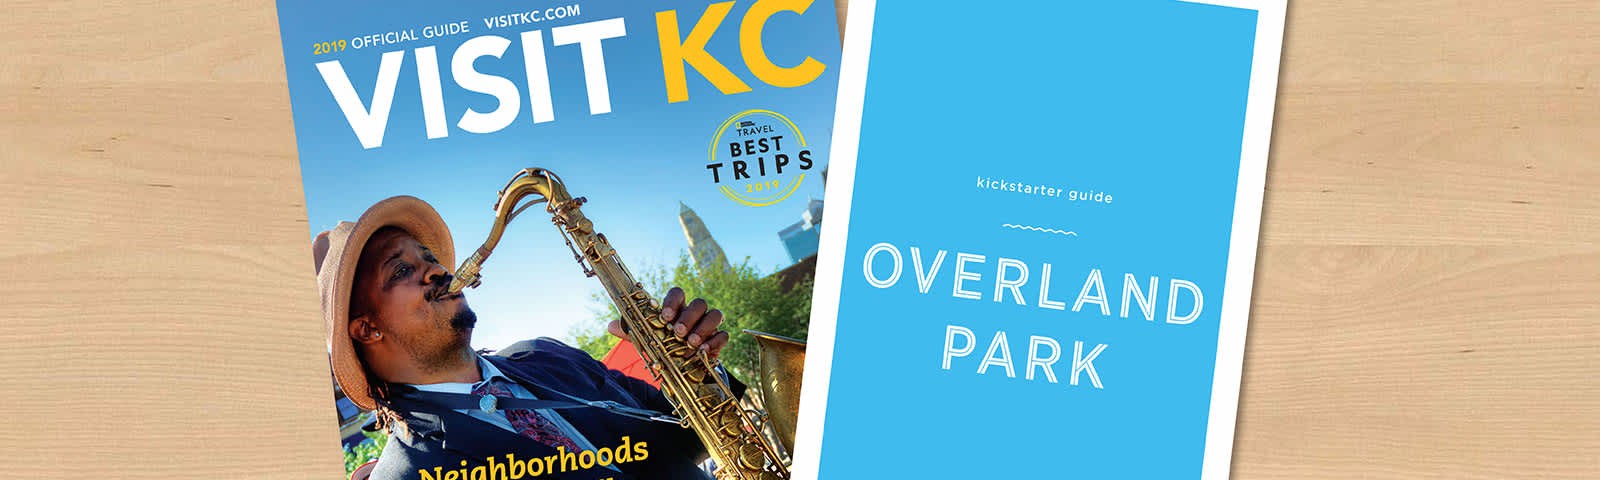 overland park visitors guide 2019 header